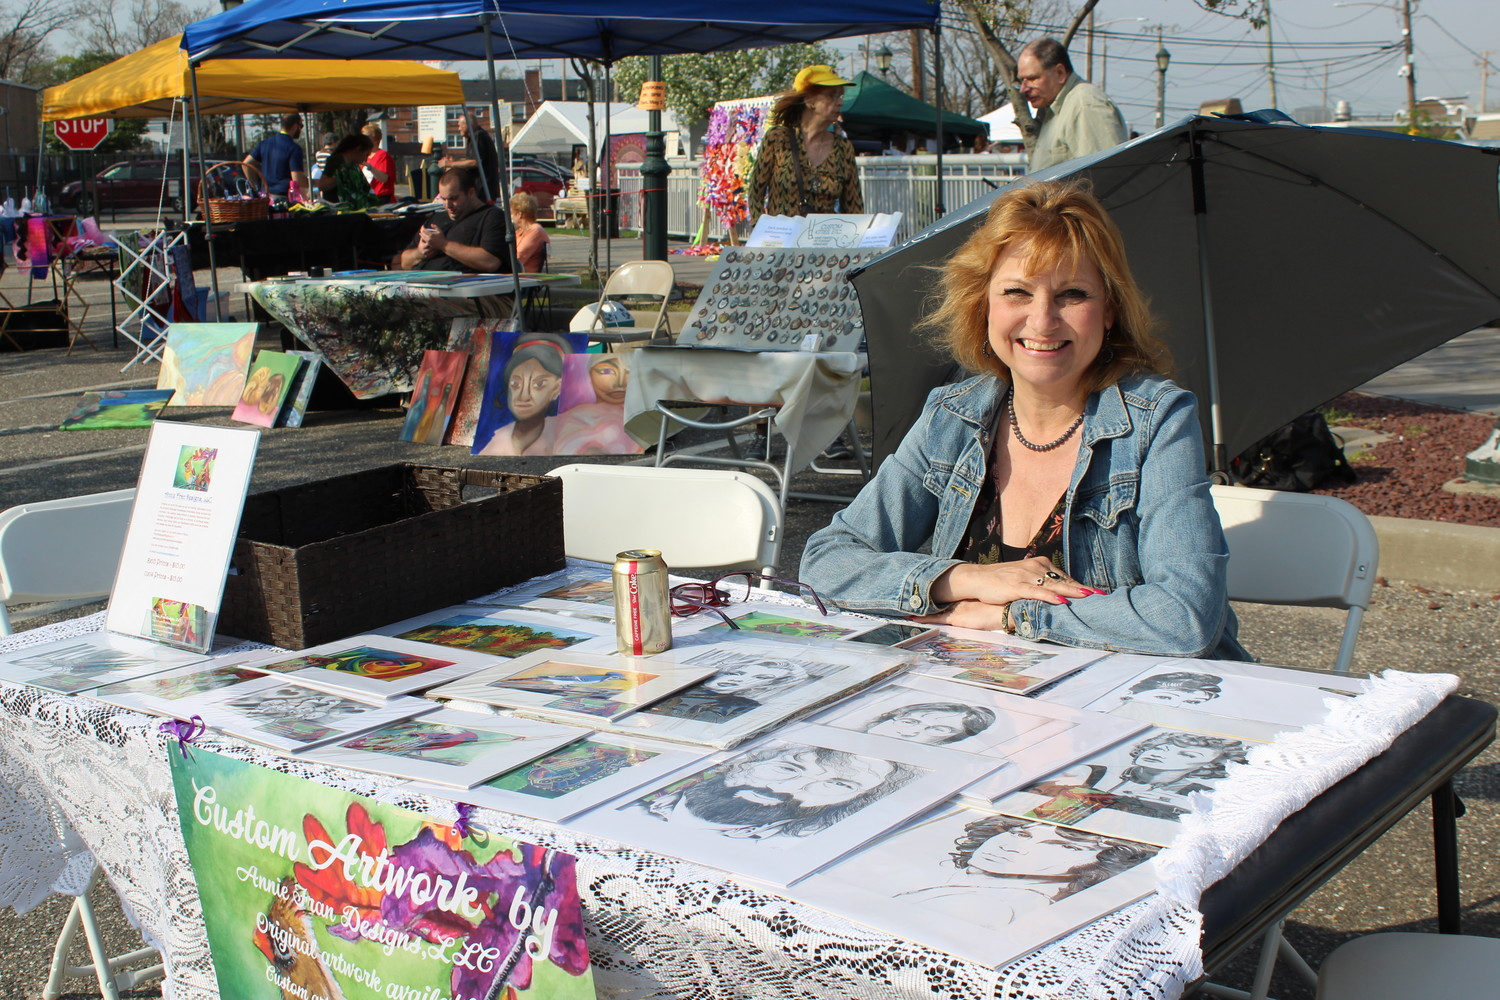 Valley Stream resident Anne Keleman sold her drawings of celebrities.